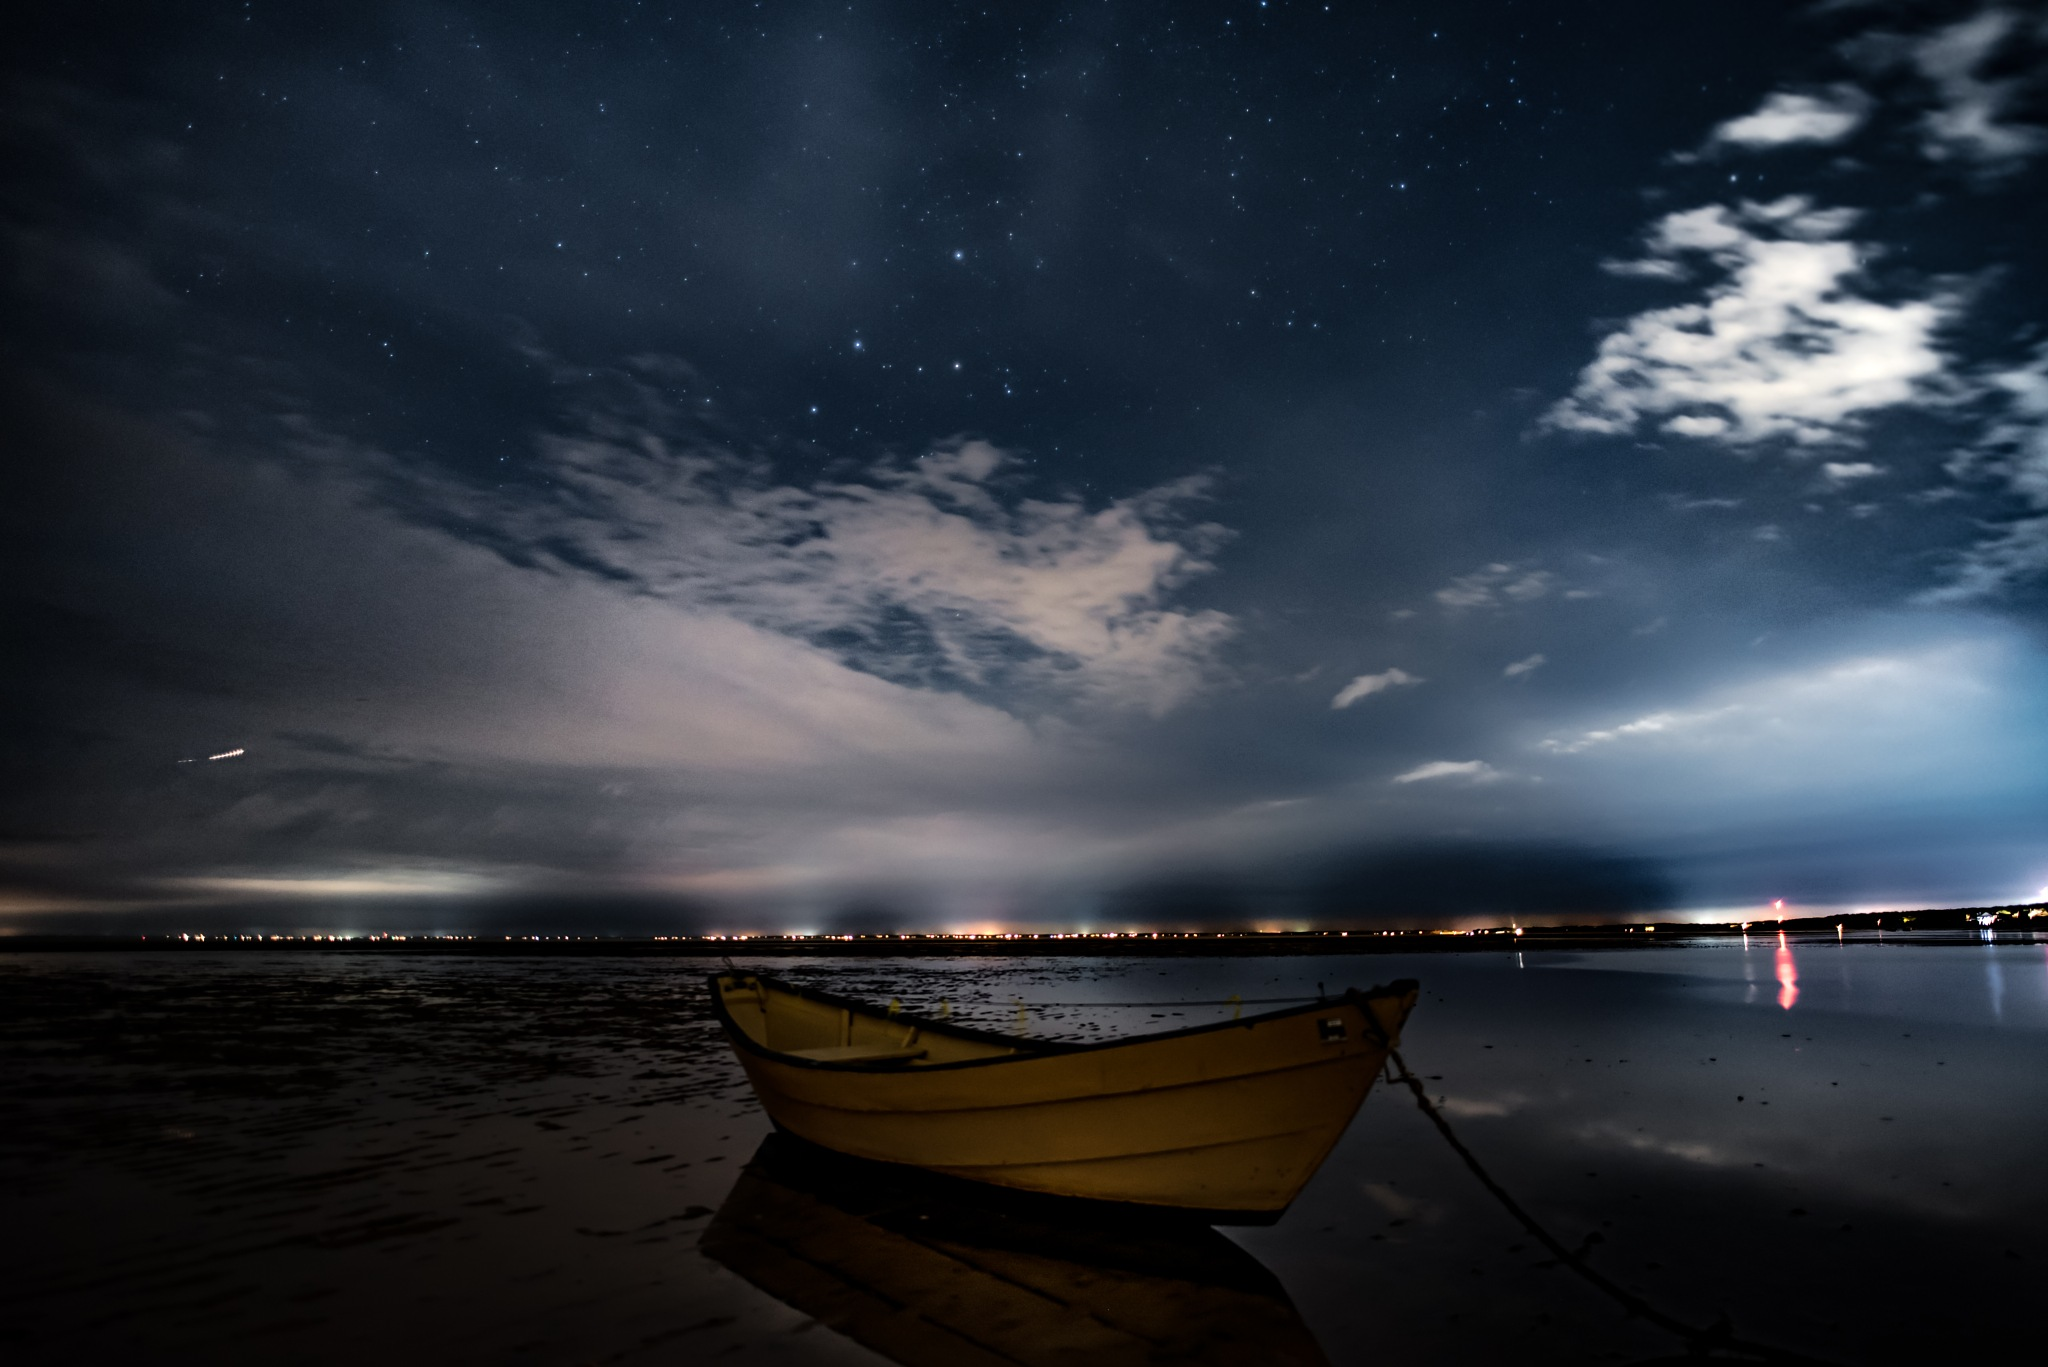 Alone at night wrapped in the company above by Todd Hyde